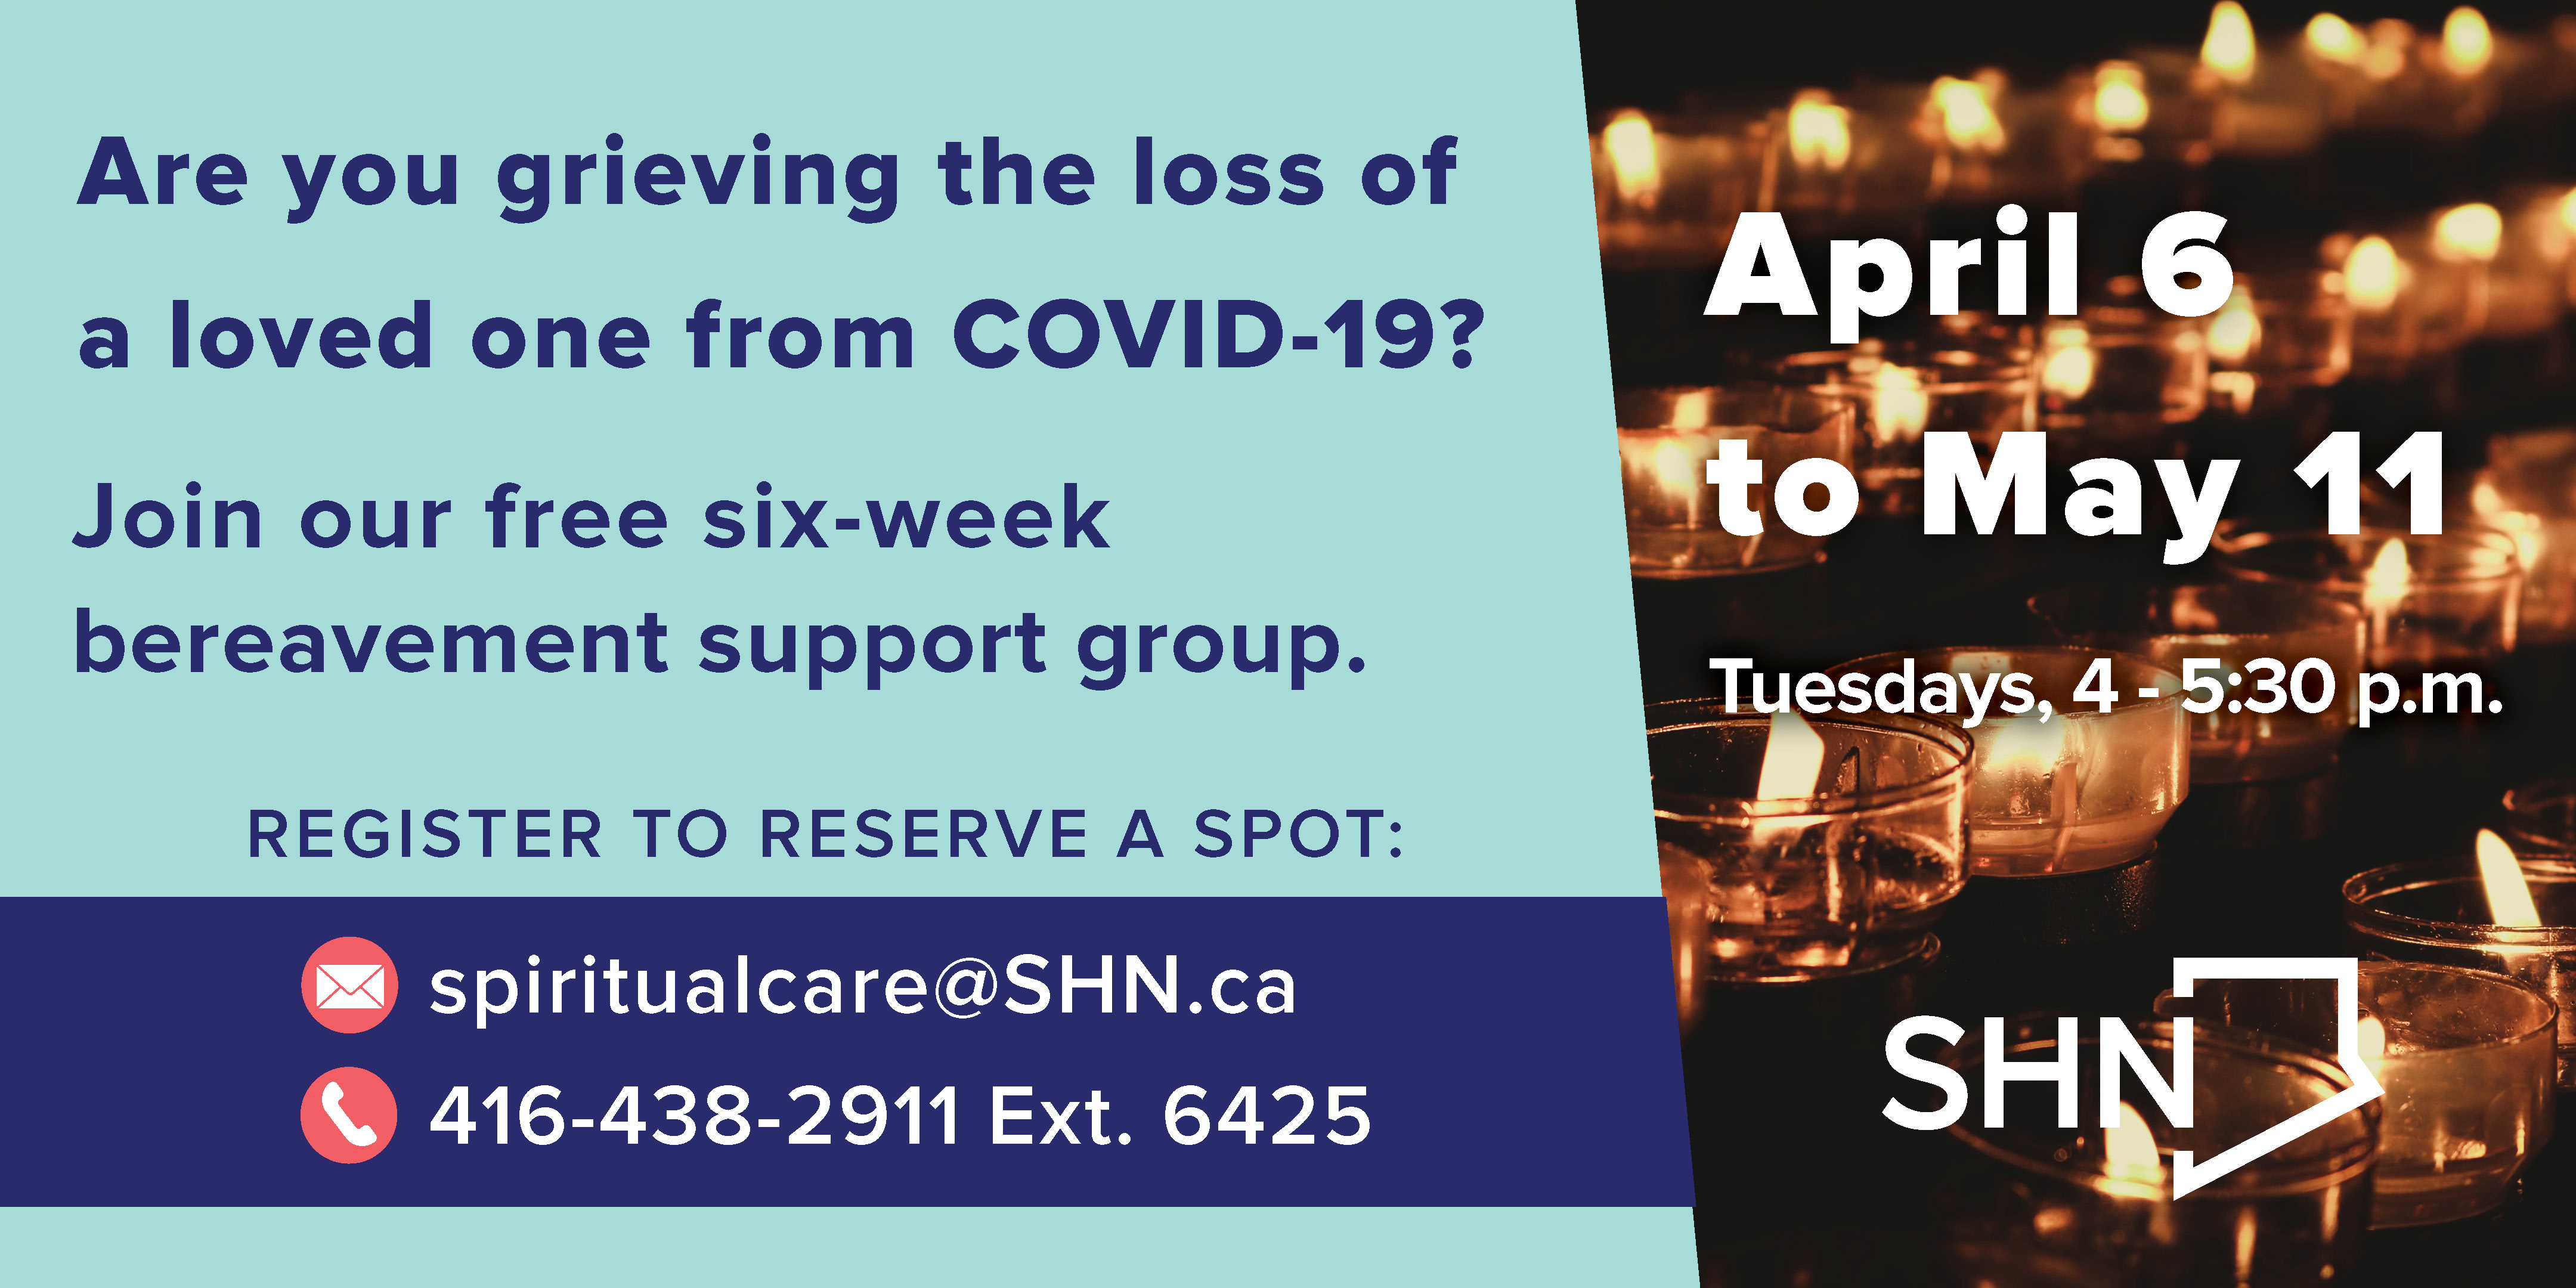 Six week bereavement support group for those who have lost a loved one from COVID-19.